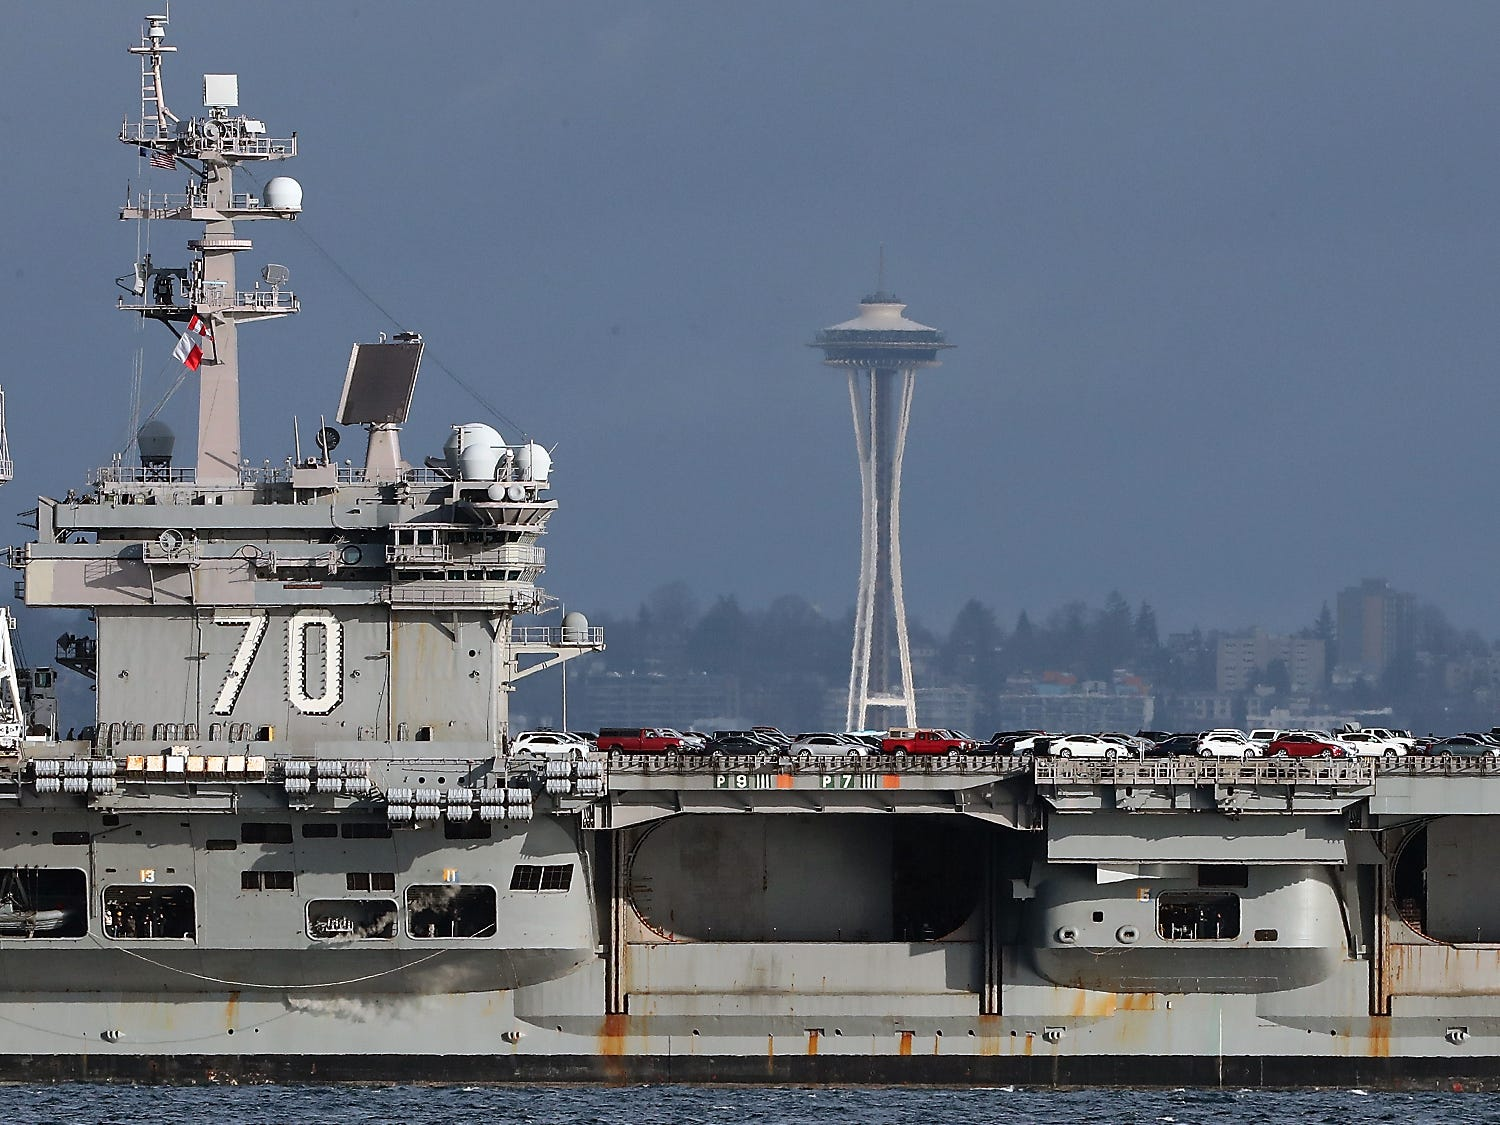 Cars fill the flight deck as the USS Carl Vinson travels past the Space Needle as seen from Bainbridge Island's Rockaway Beach on Sunday, January 20, 2019.